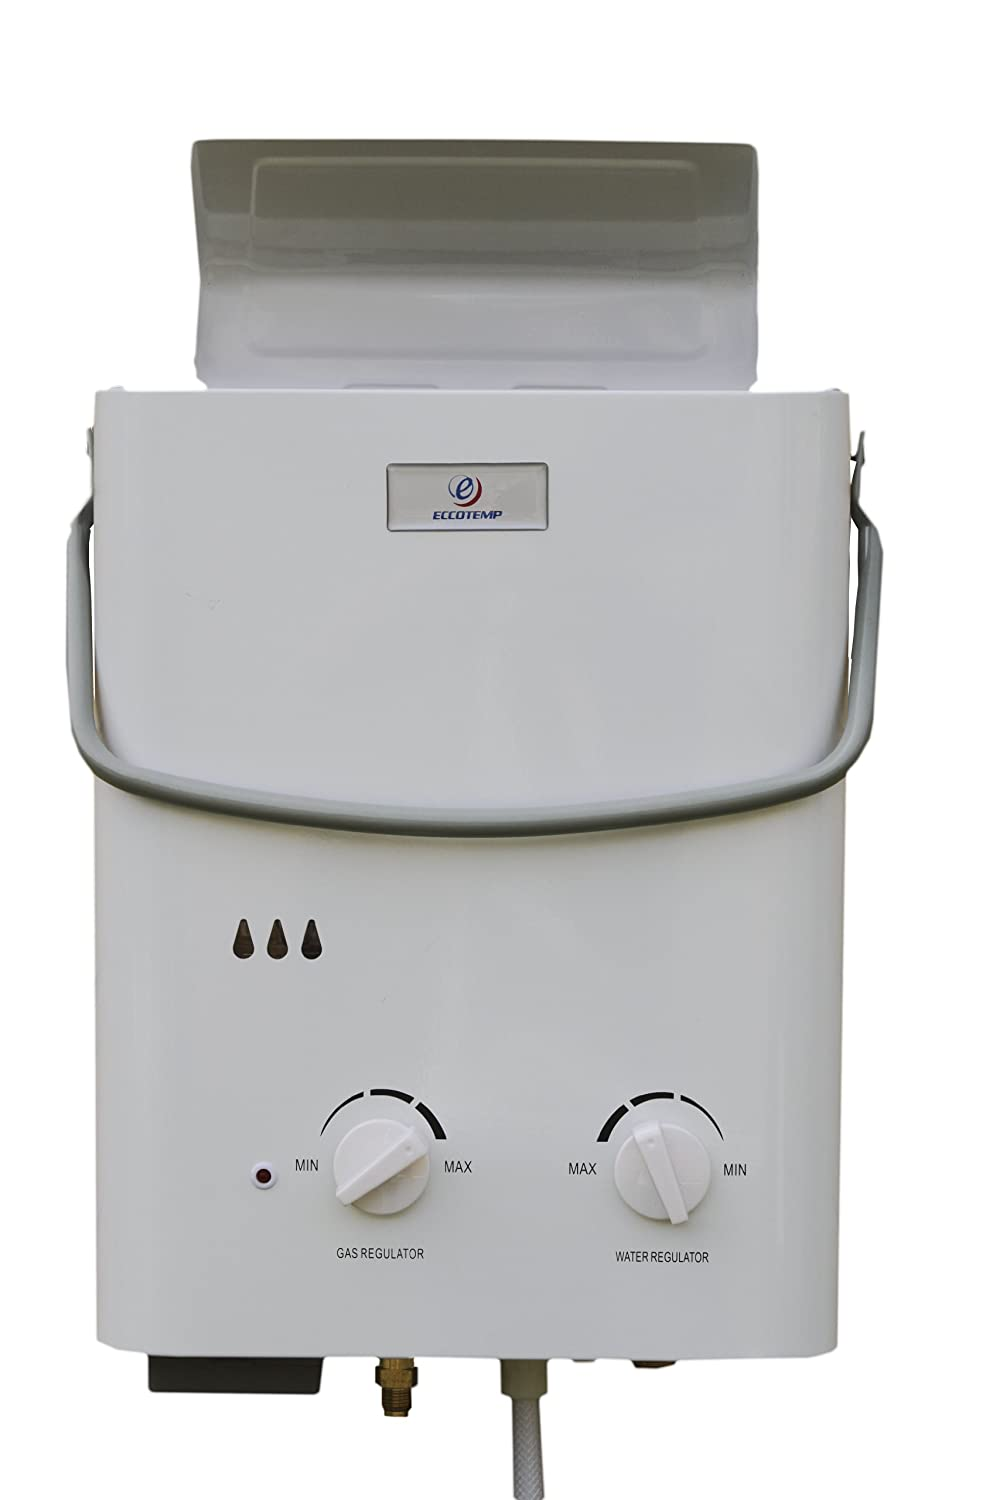 Eccotemp L5 Liquid Propane Portable Tankless Water Heater and Shower at Sears.com